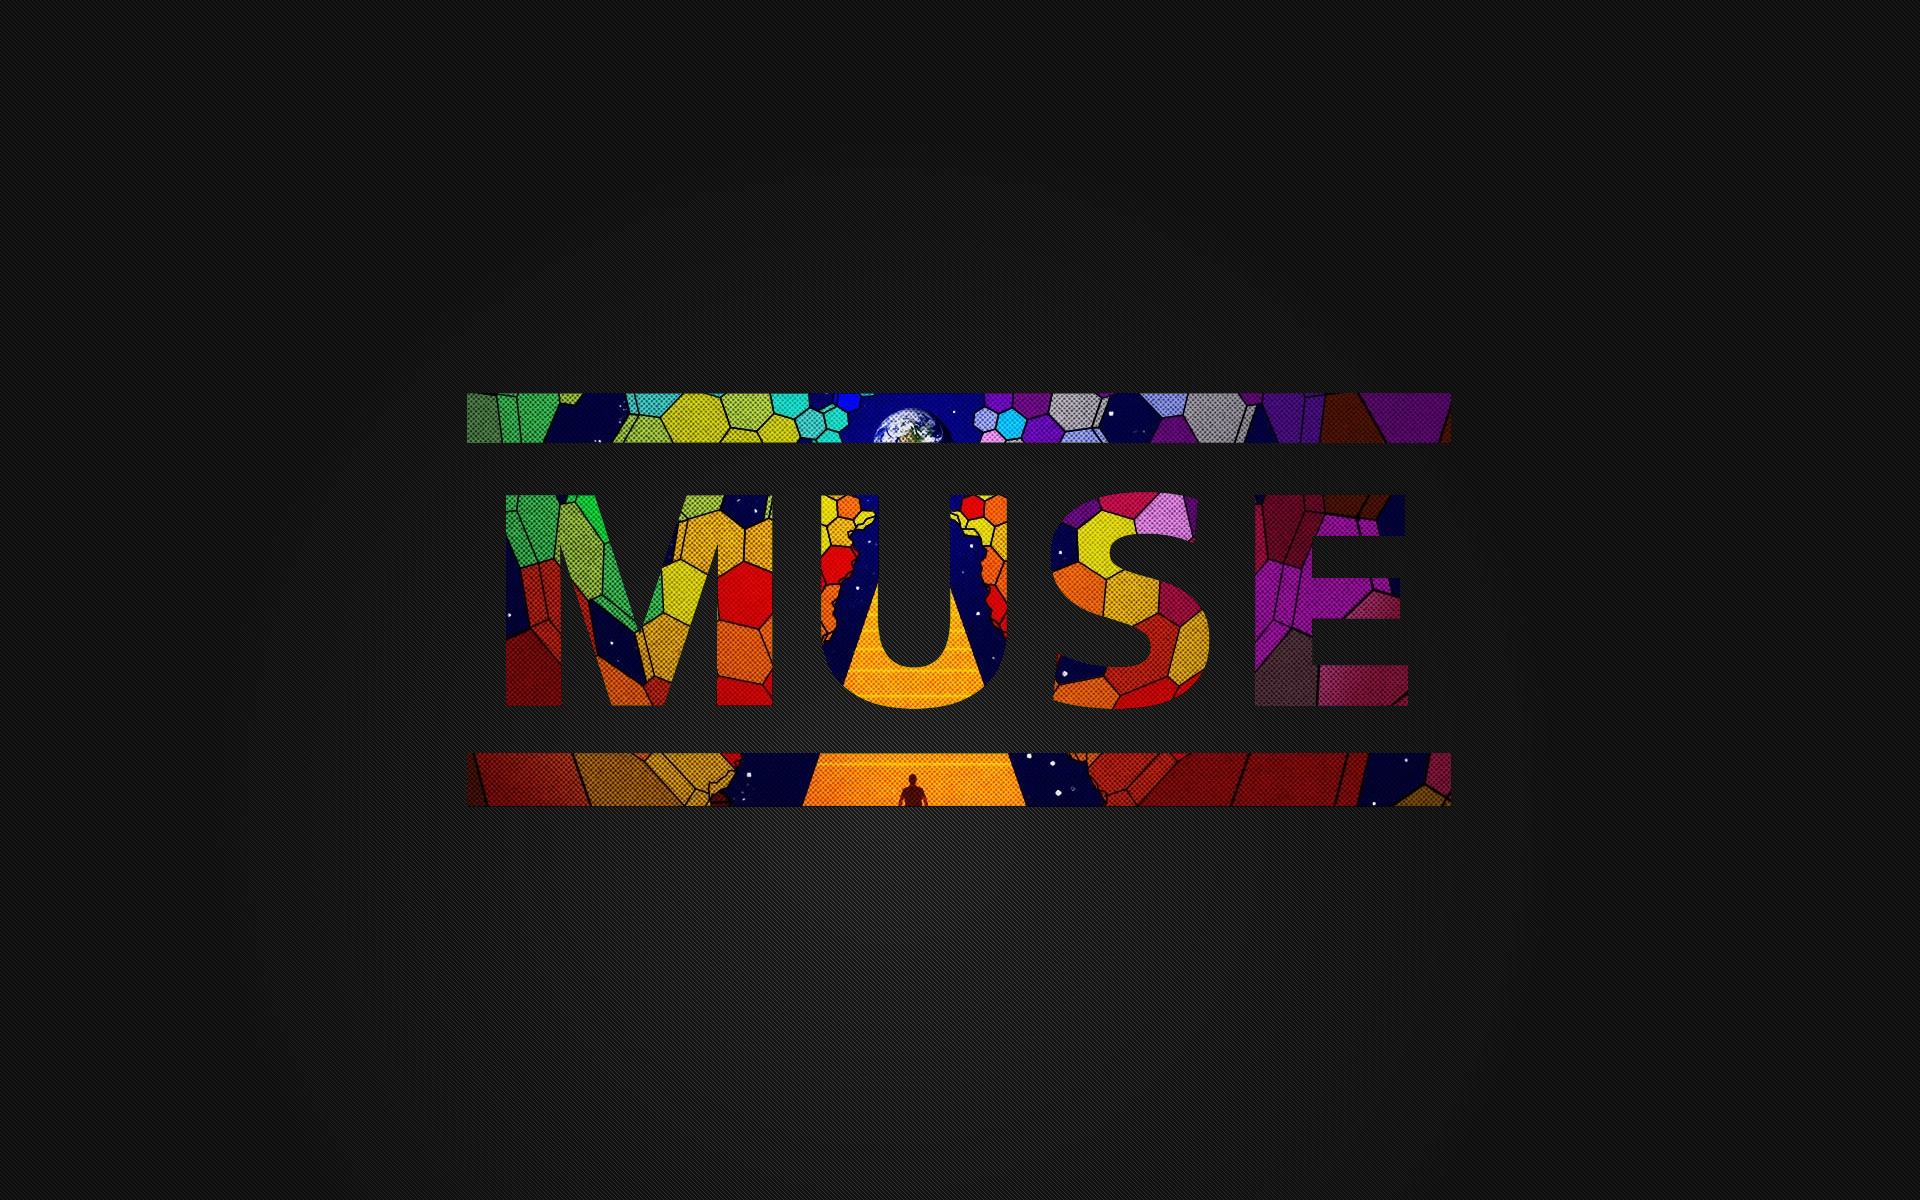 Cool Live Wallpapers For Iphone X Muse Full Hd Fond D 233 Cran And Arri 232 Re Plan 1920x1200